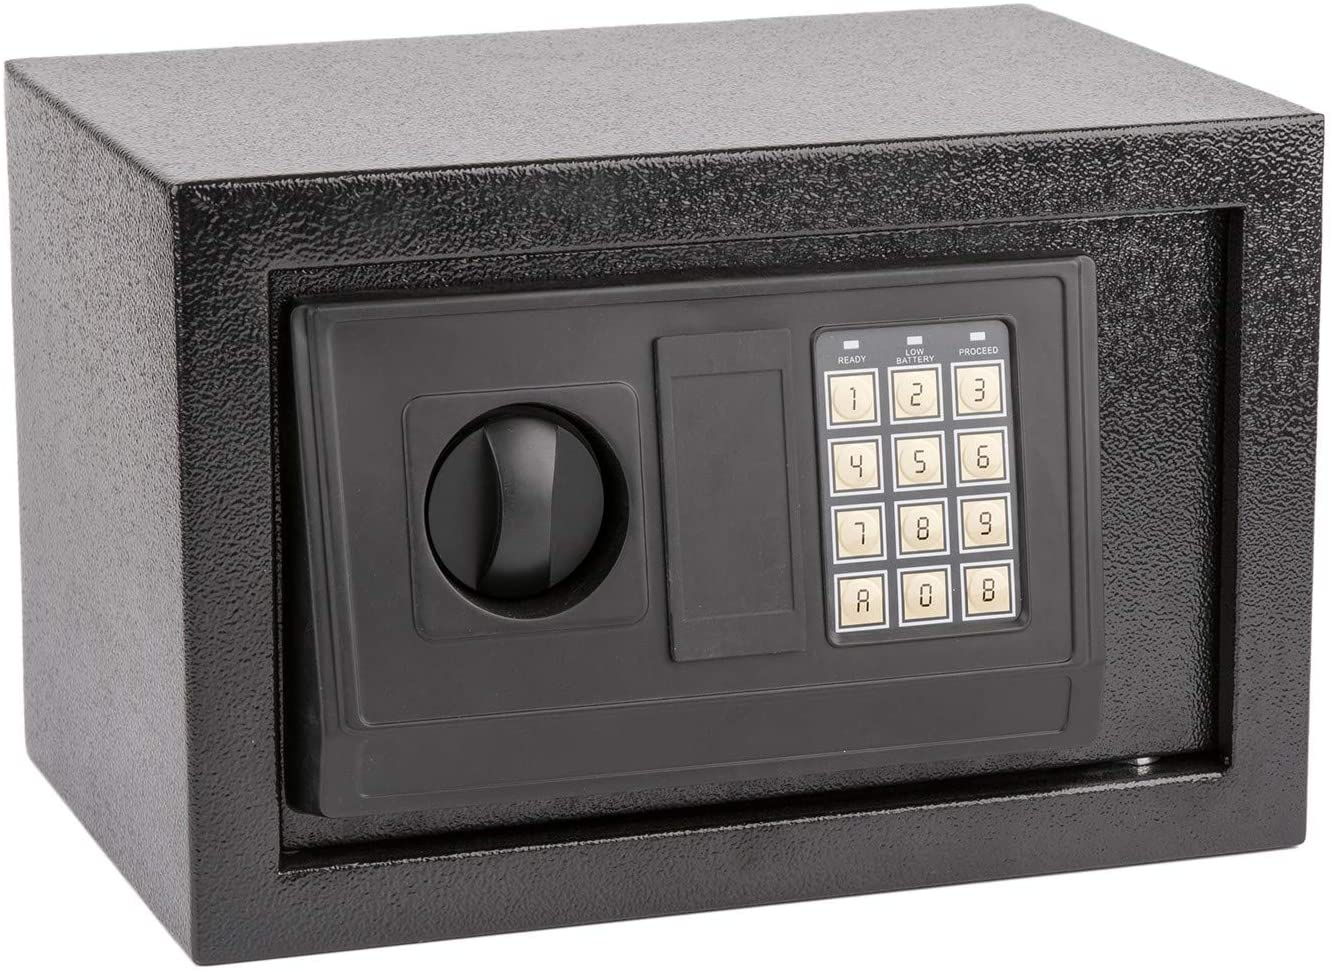 Sentry Safe Safe Box Safety Boxes Small Security Hidden Safe with Electronic Digital Keypad Lock Money Box Lock Box Wall Cabinet Safe Box for Home Office Hotel with 2 Keys, Black (12.2 x 7.87 x 7.87)